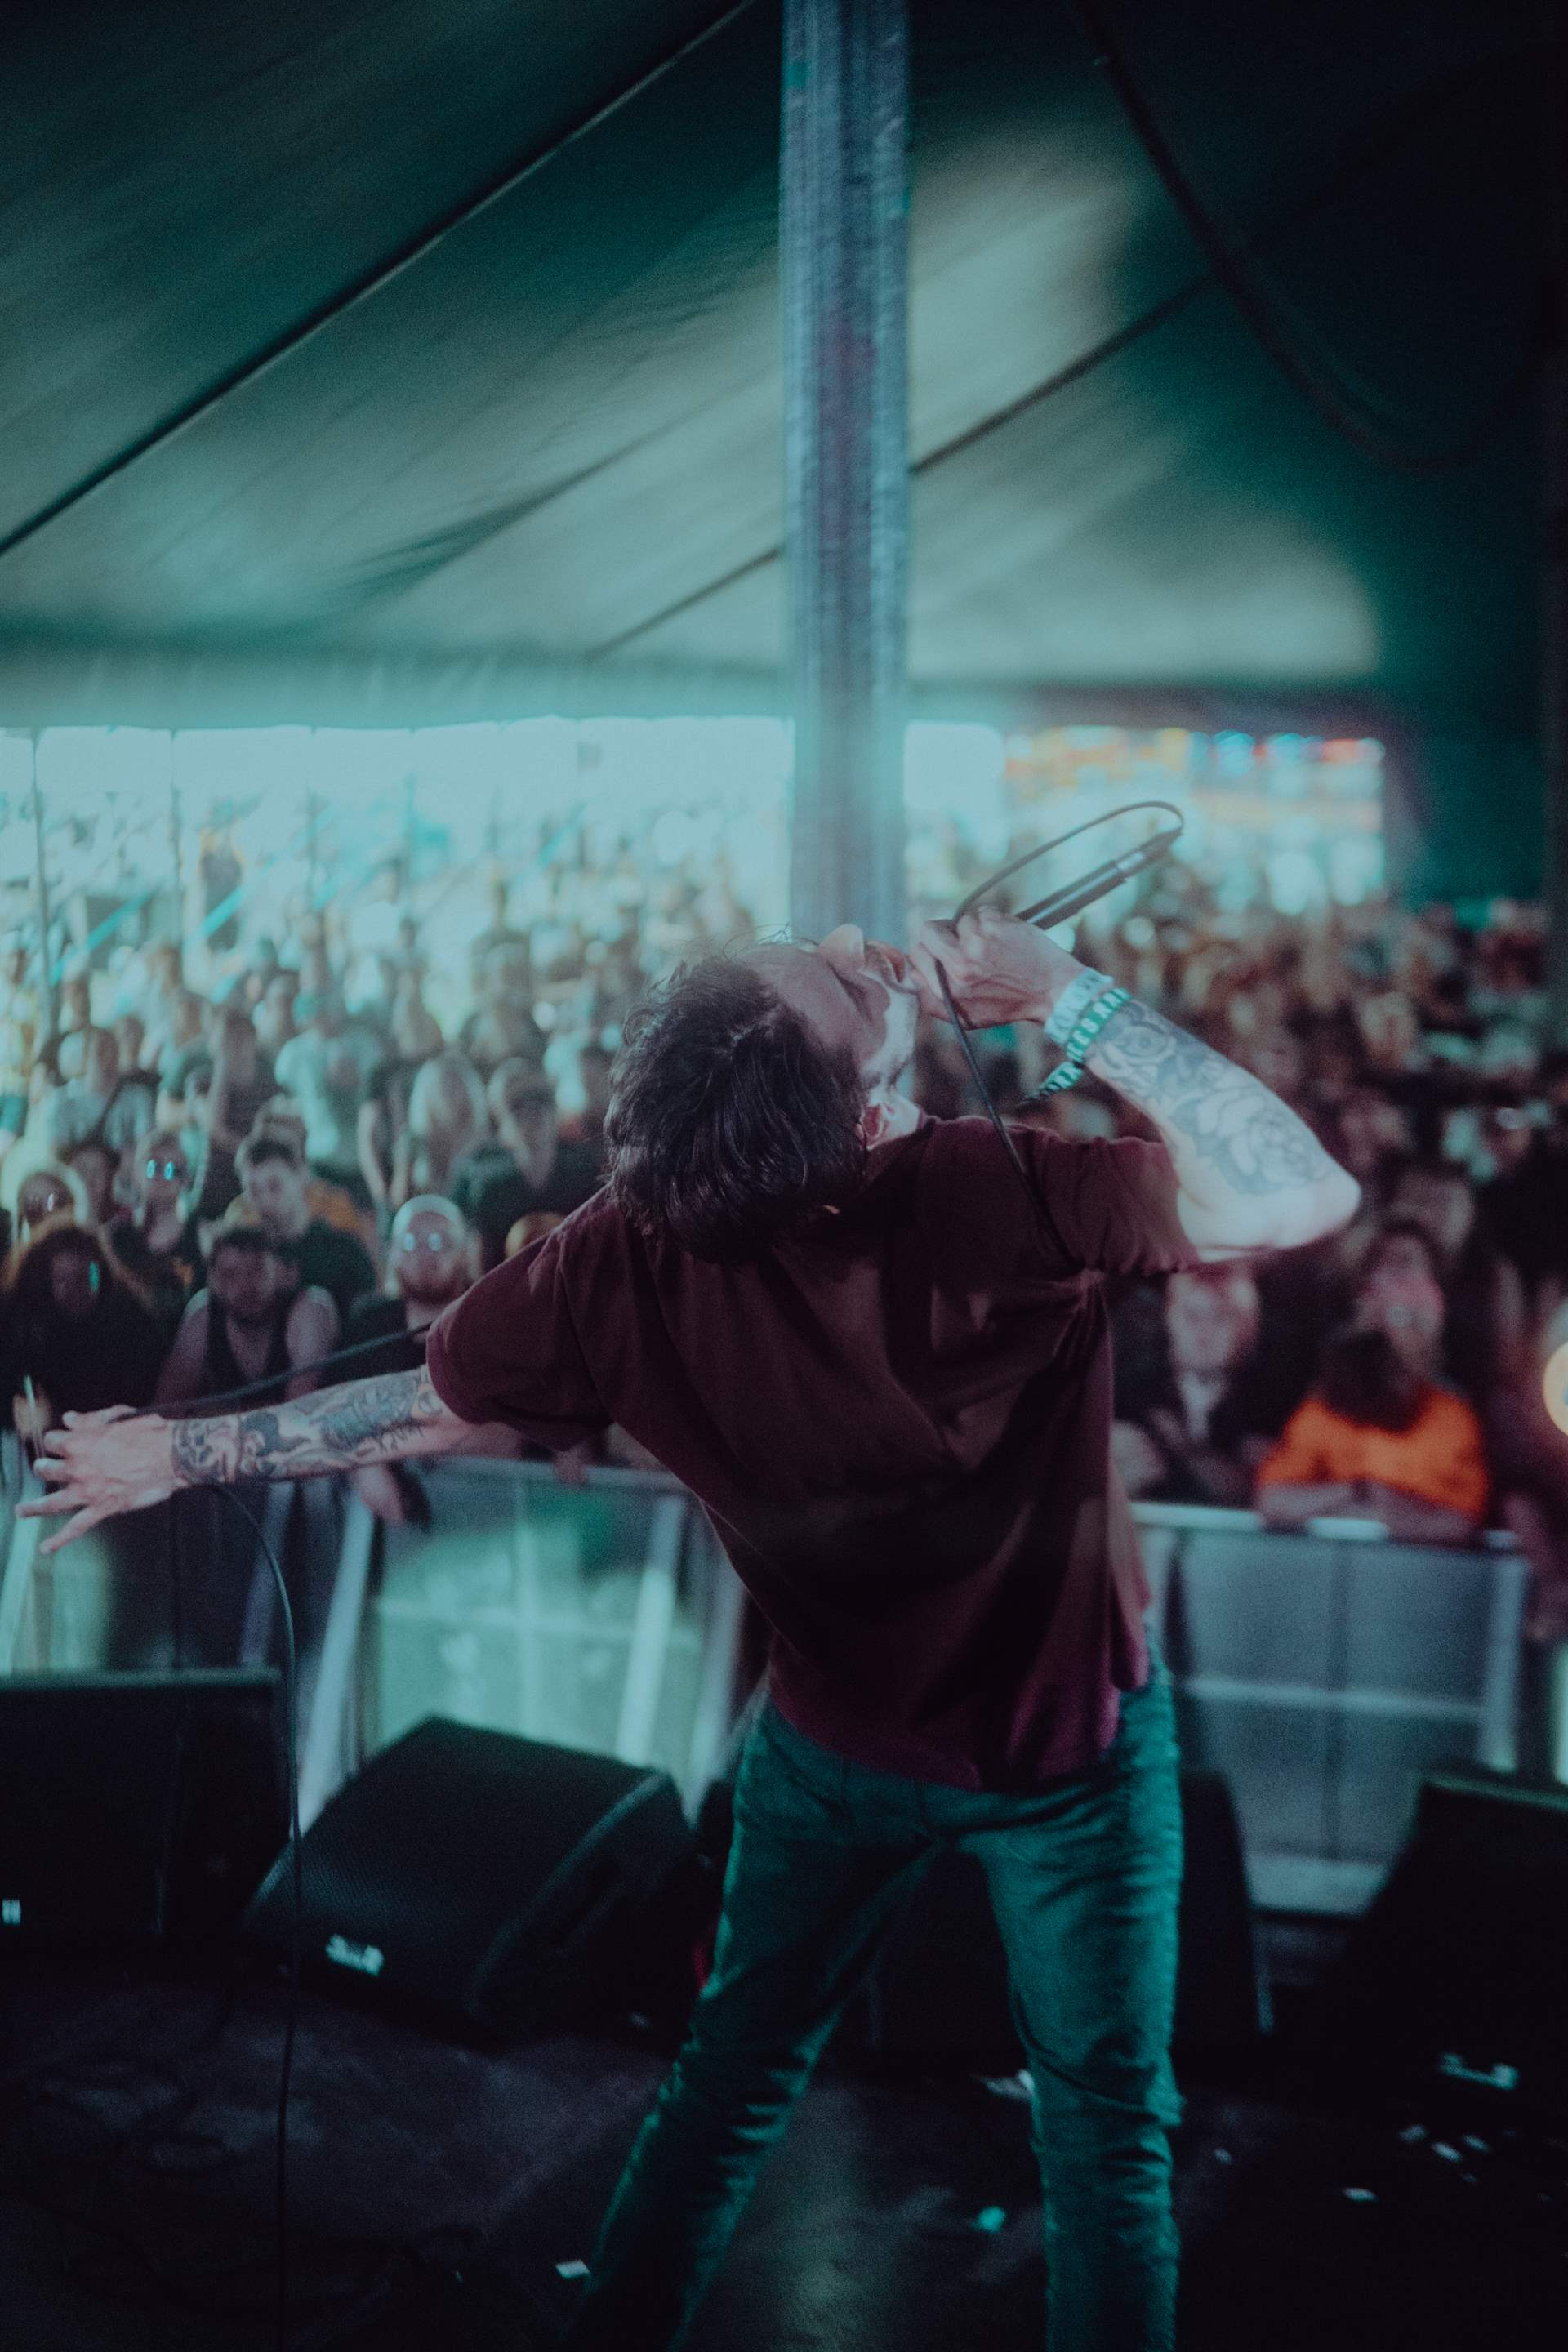 ground culture @ 2000 trees 2019